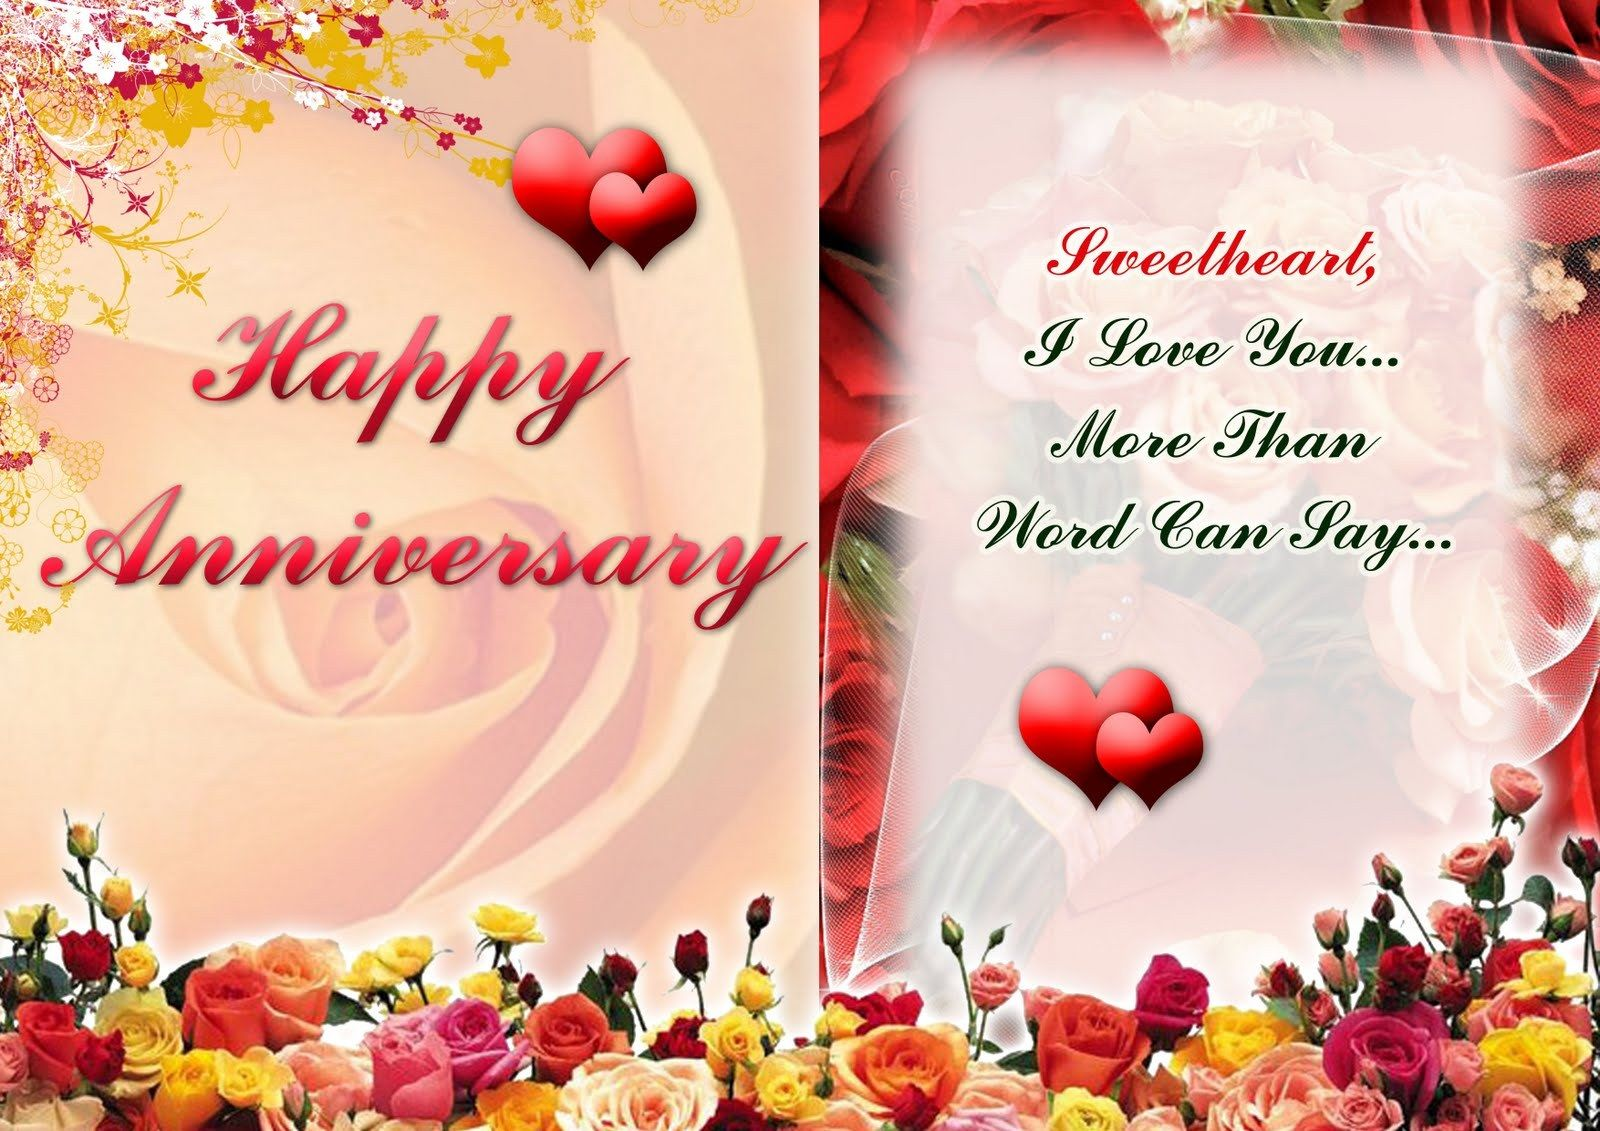 Marriage anniversary cards purplewallpapers marriage